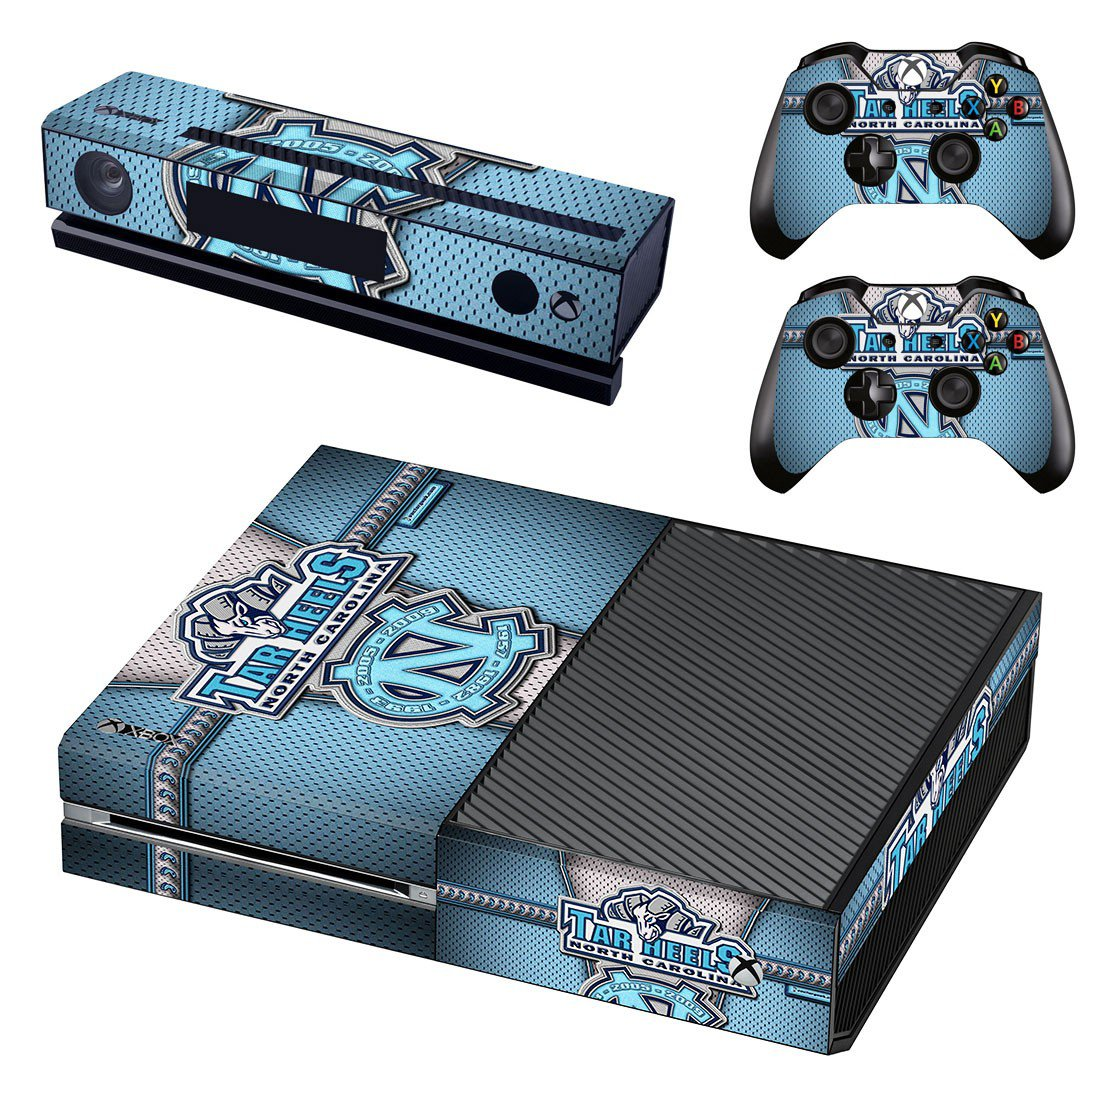 North Carolina Tar Heels skin decal for Xbox one console and controllers